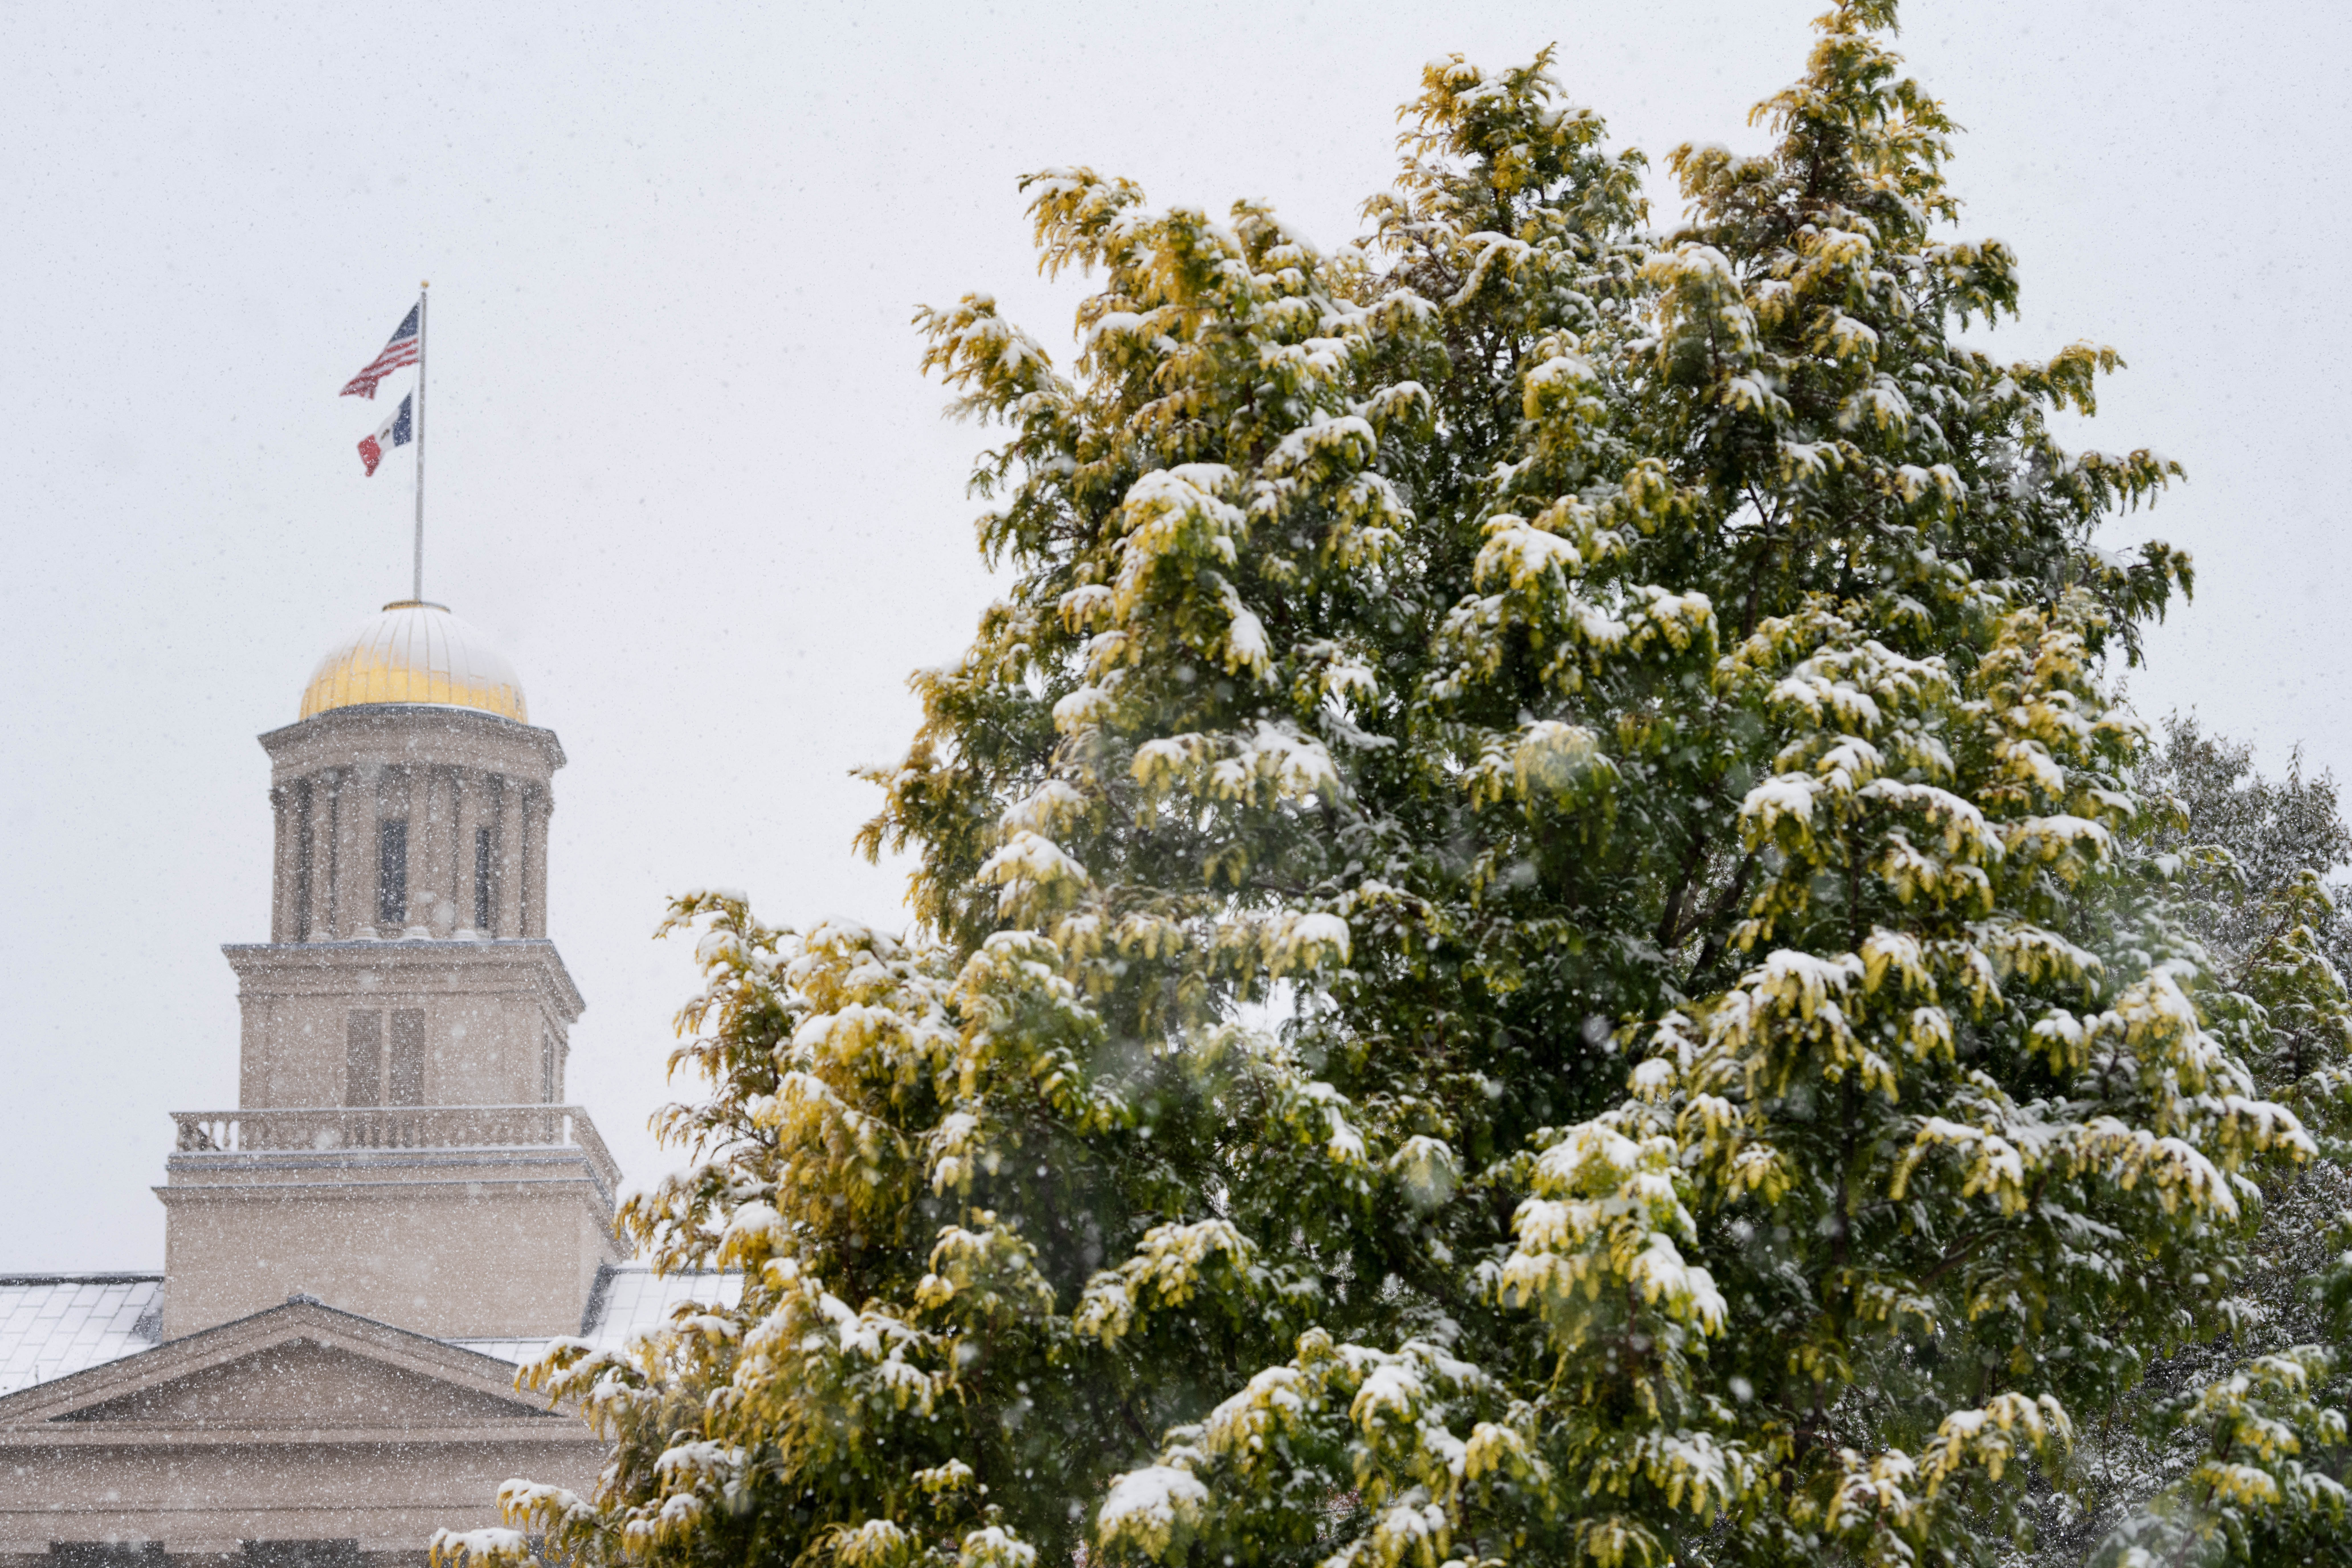 Snow covering the Old Capitol on the UI Pentacrest